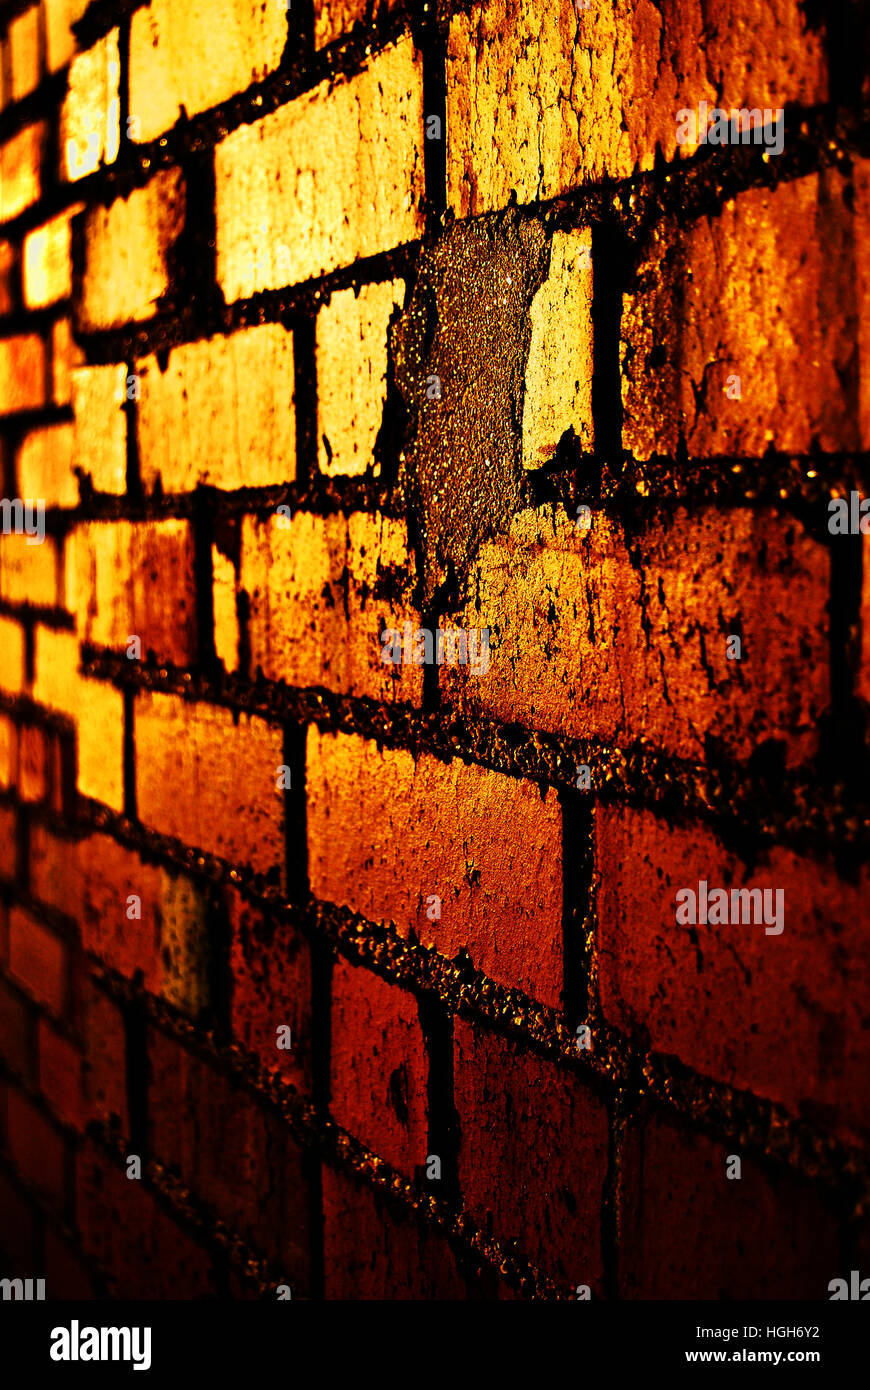 Red brick wall with the setting sun reflecting off of it. - Stock Image